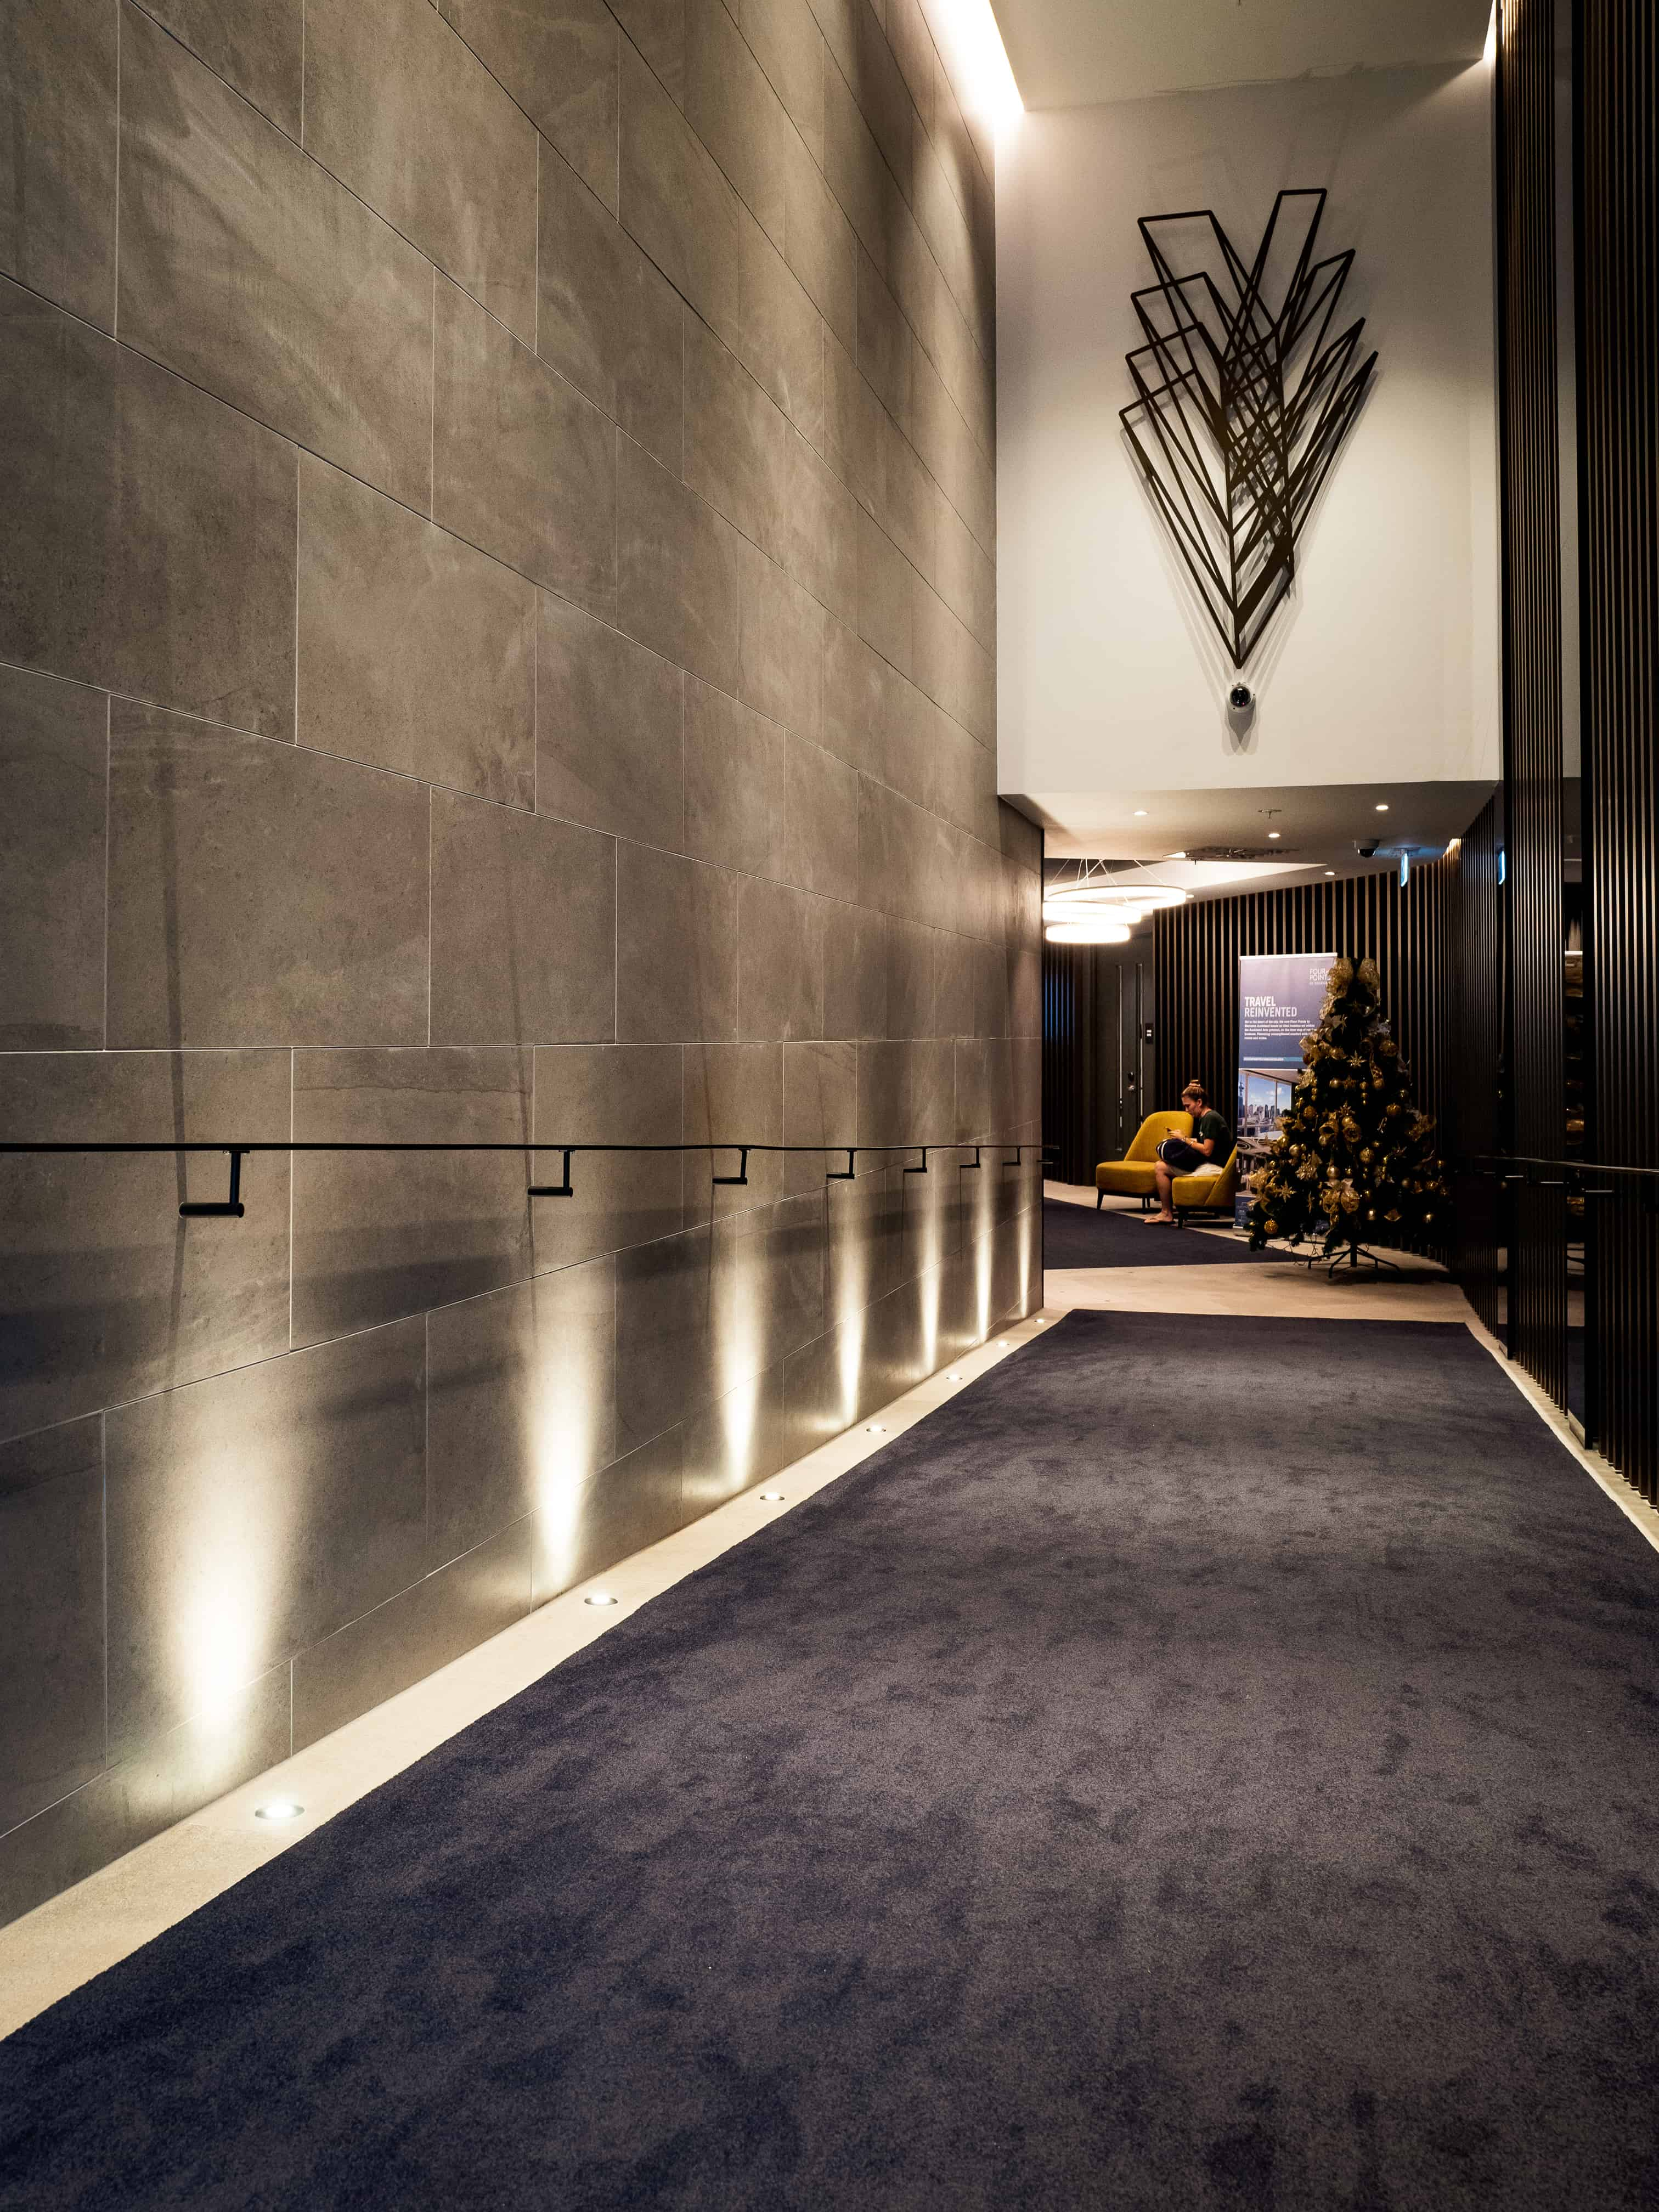 Sheraton Four Points hotel in Auckland hallway design with Christmas tree